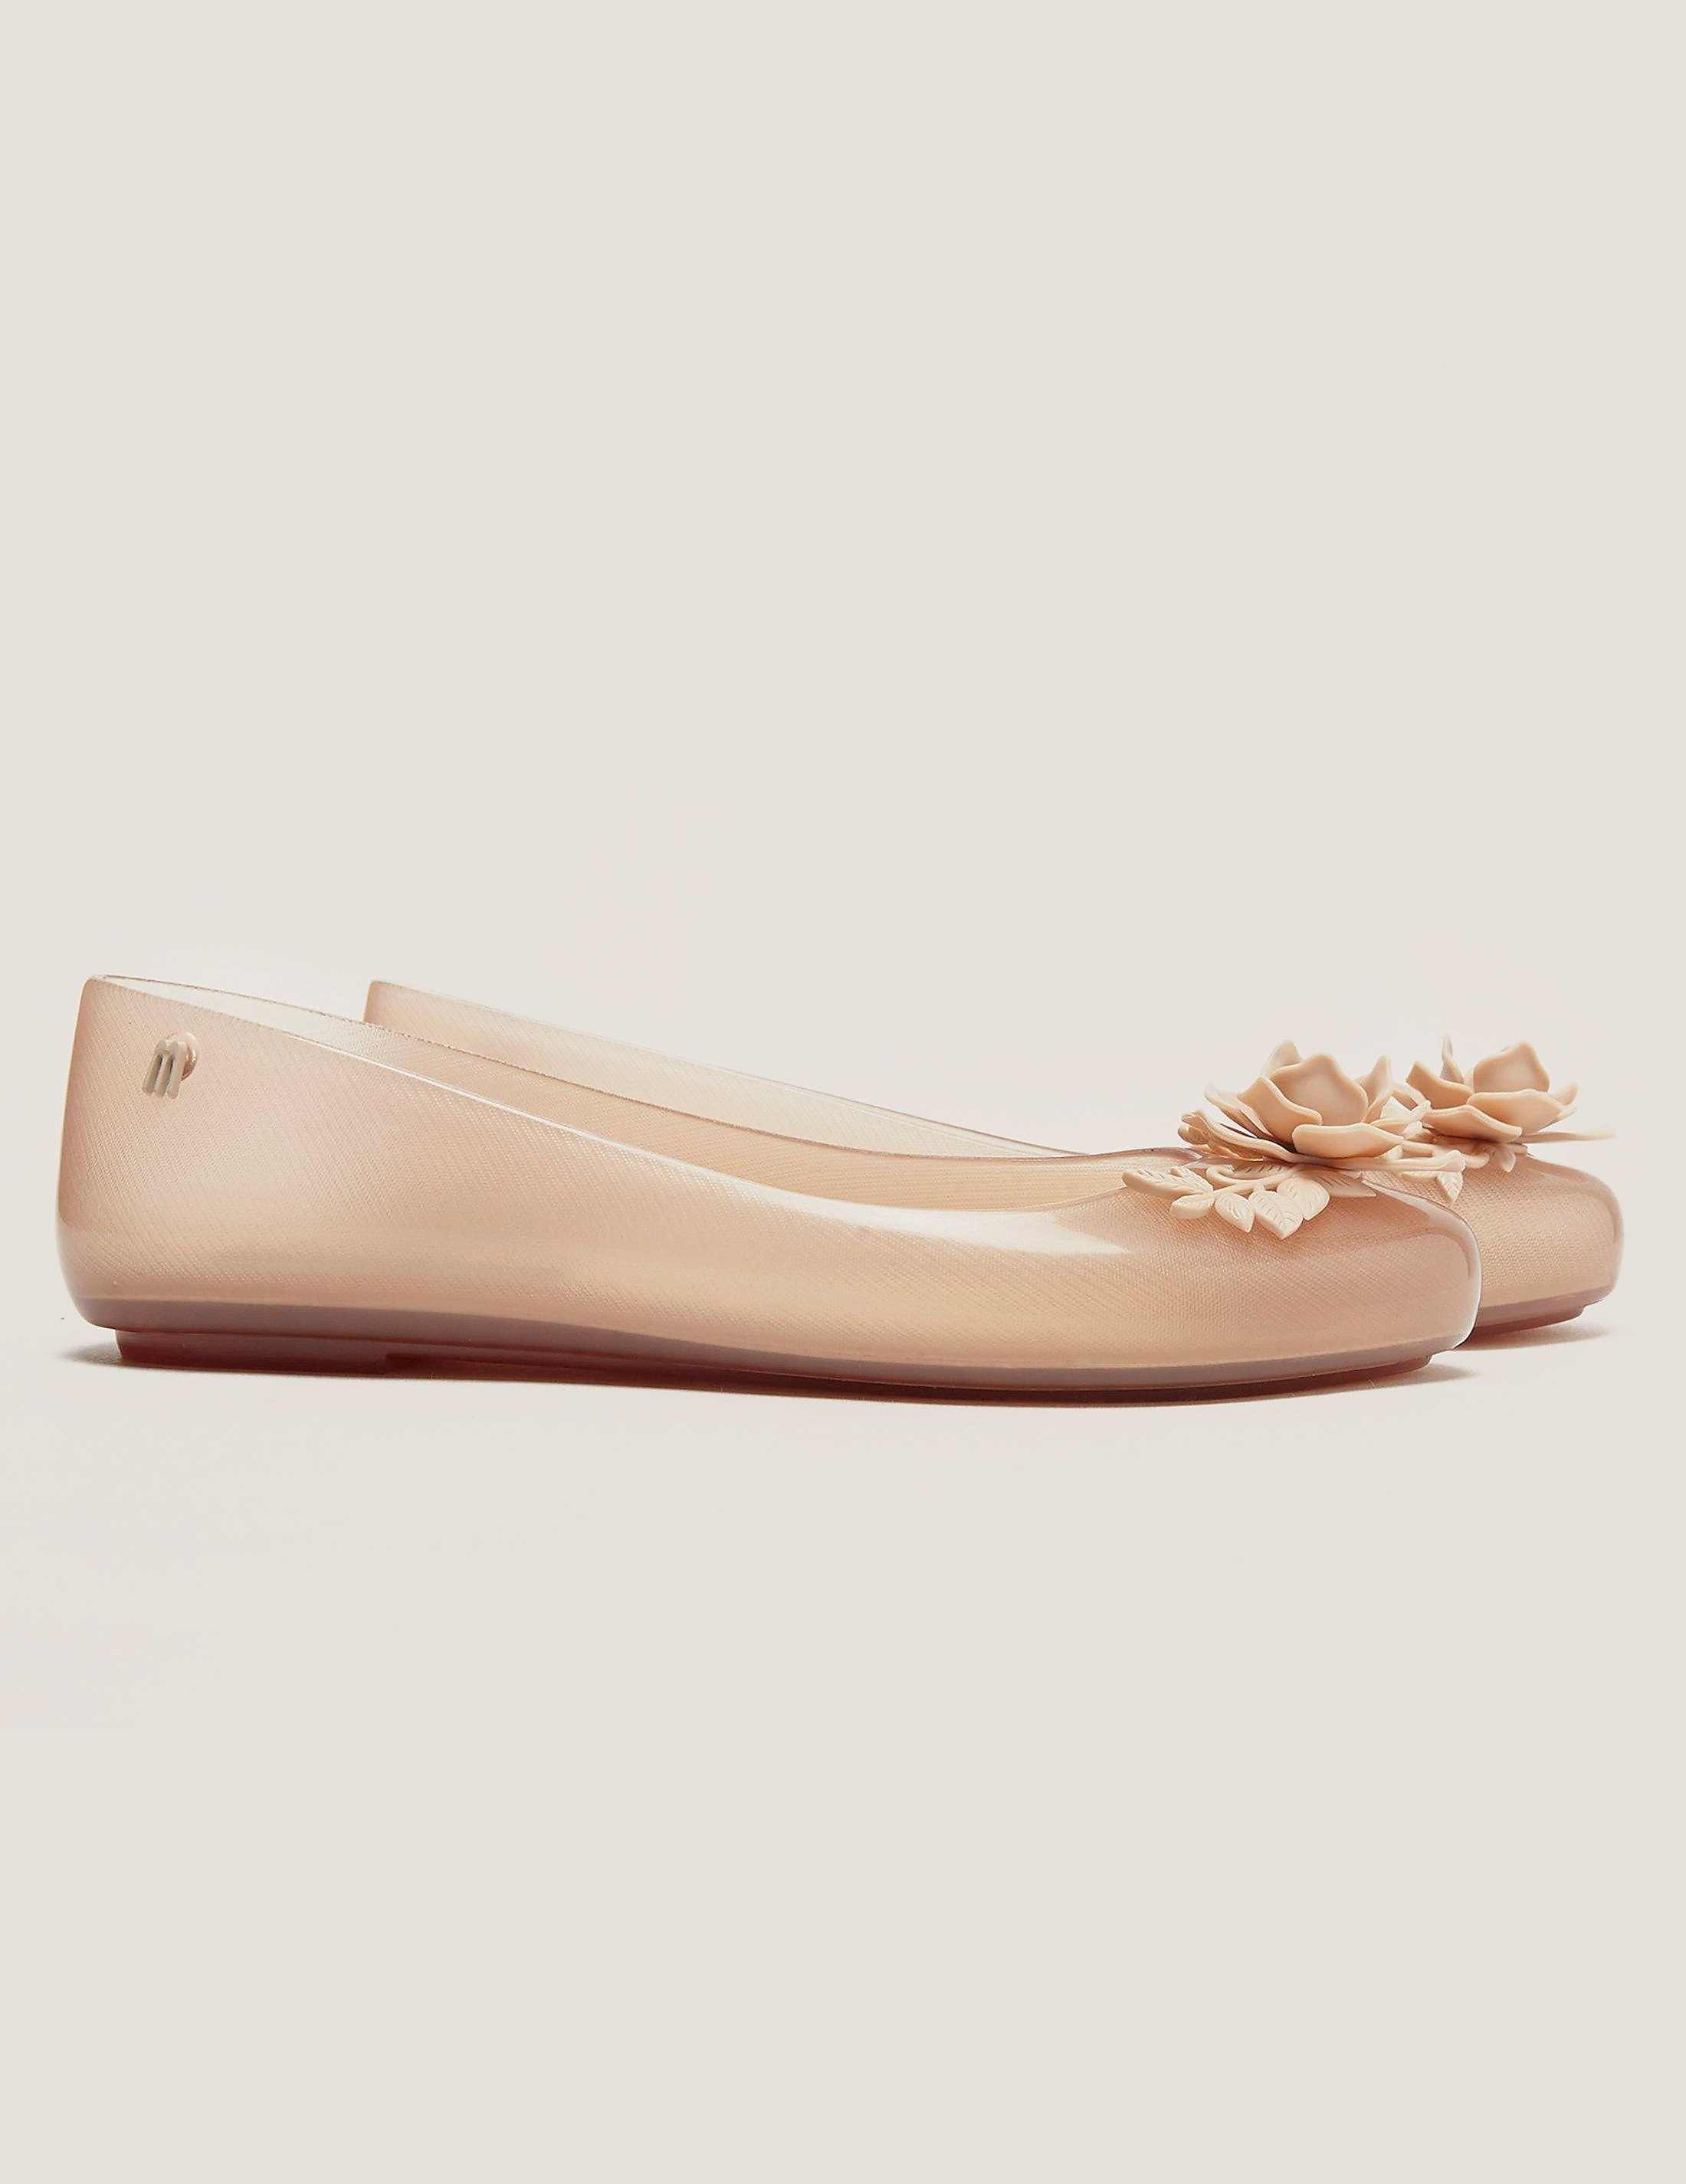 Melissa AH Space Love Flower Pump